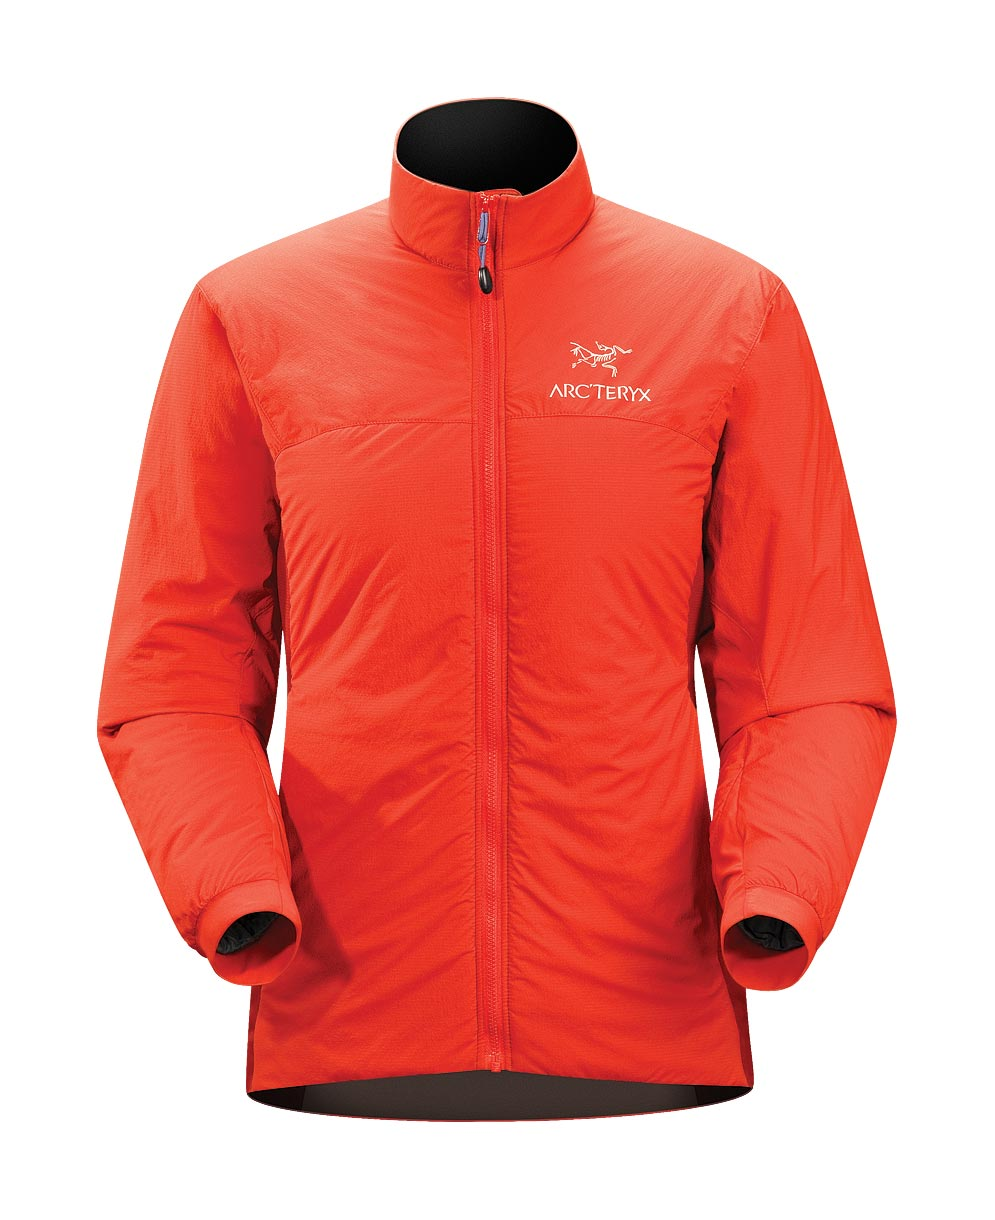 Arcteryx Jackets Women Poppy Atom LT Jacket